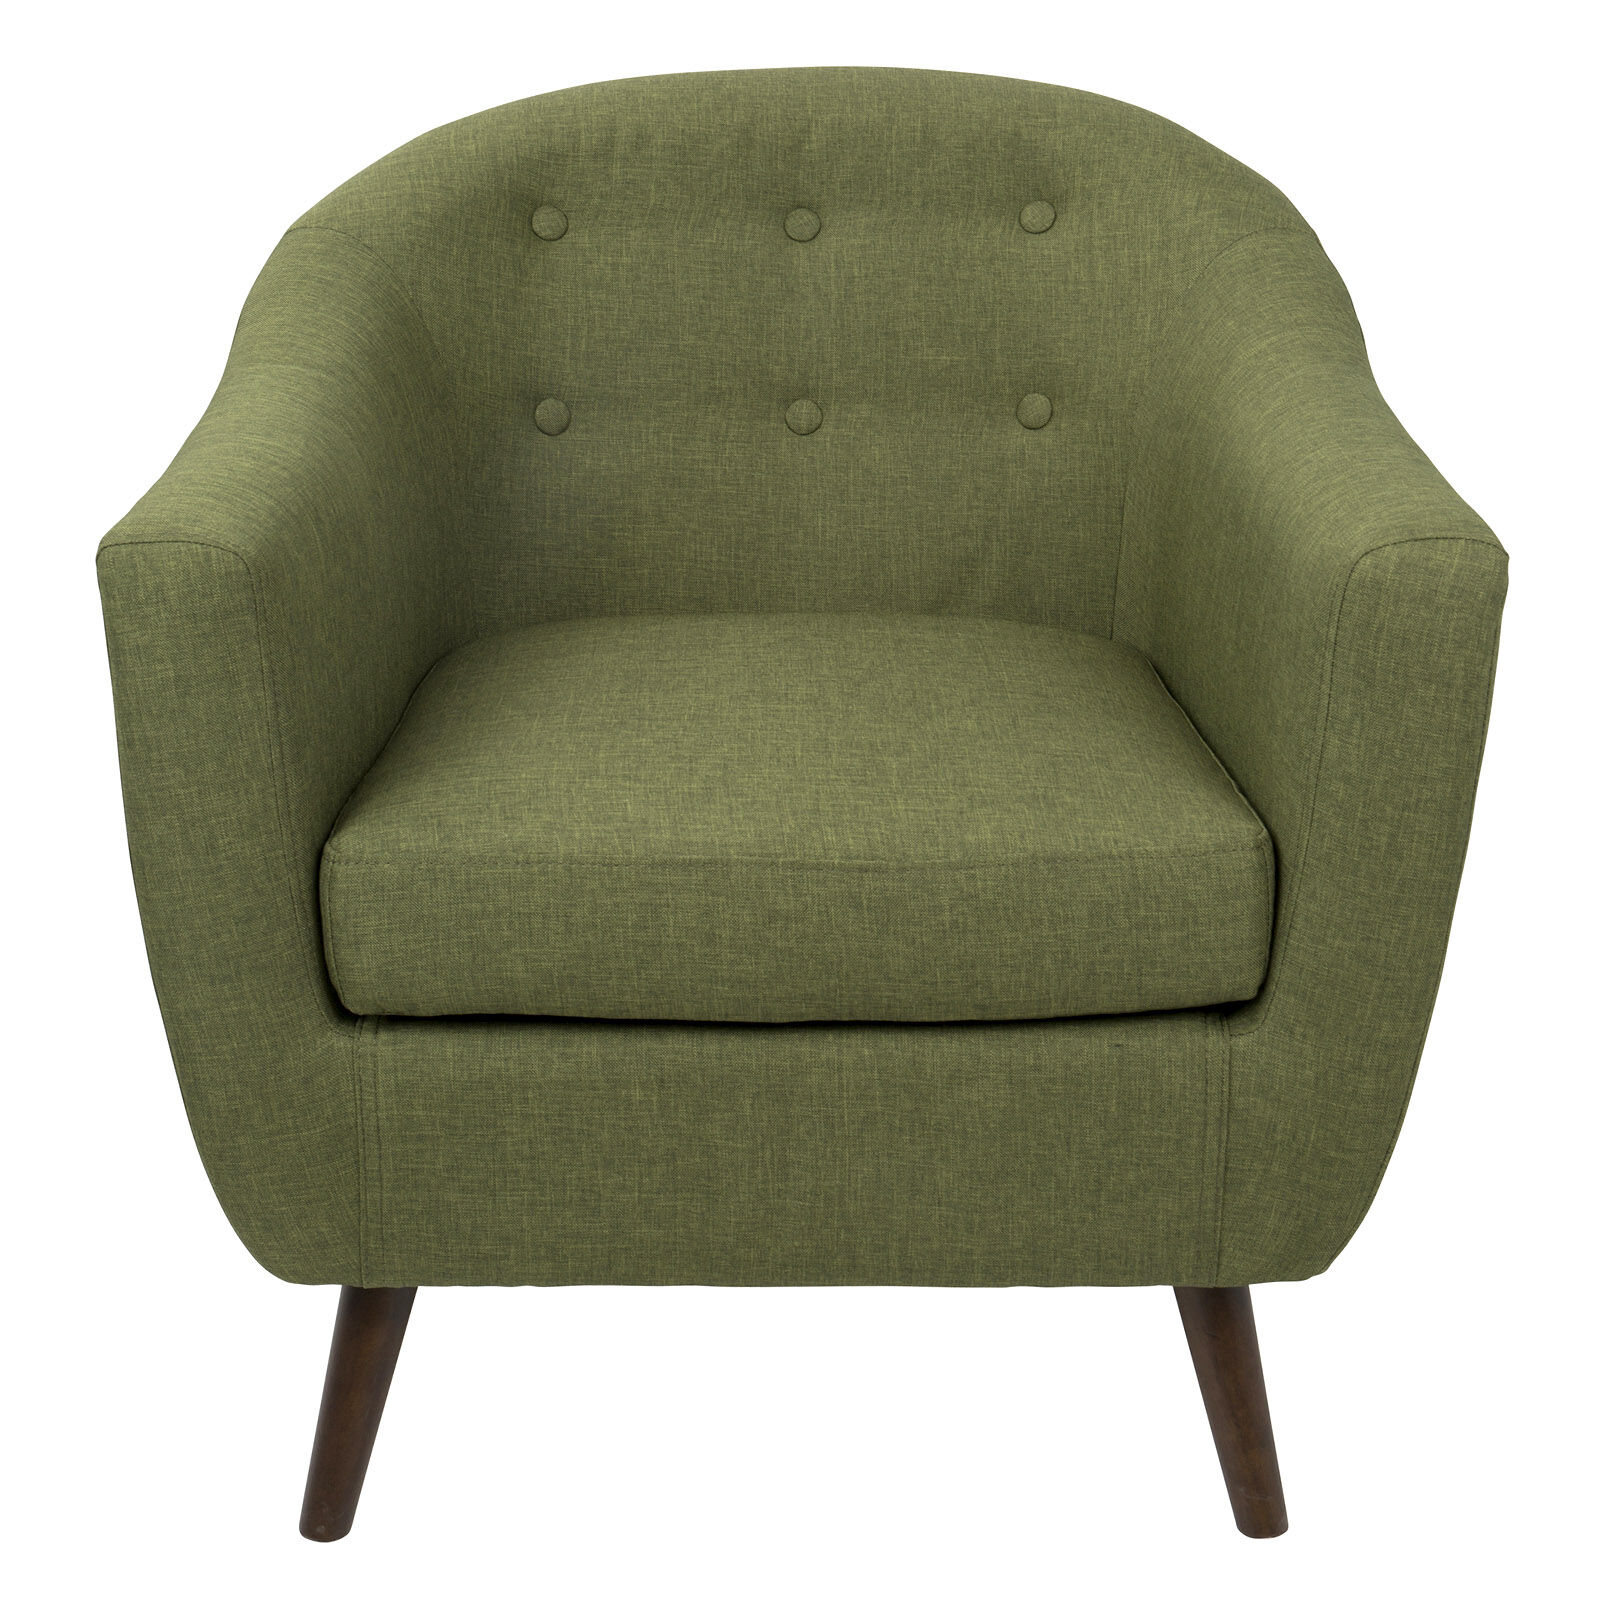 olive green accent chair zip dee chairs rockwell at home